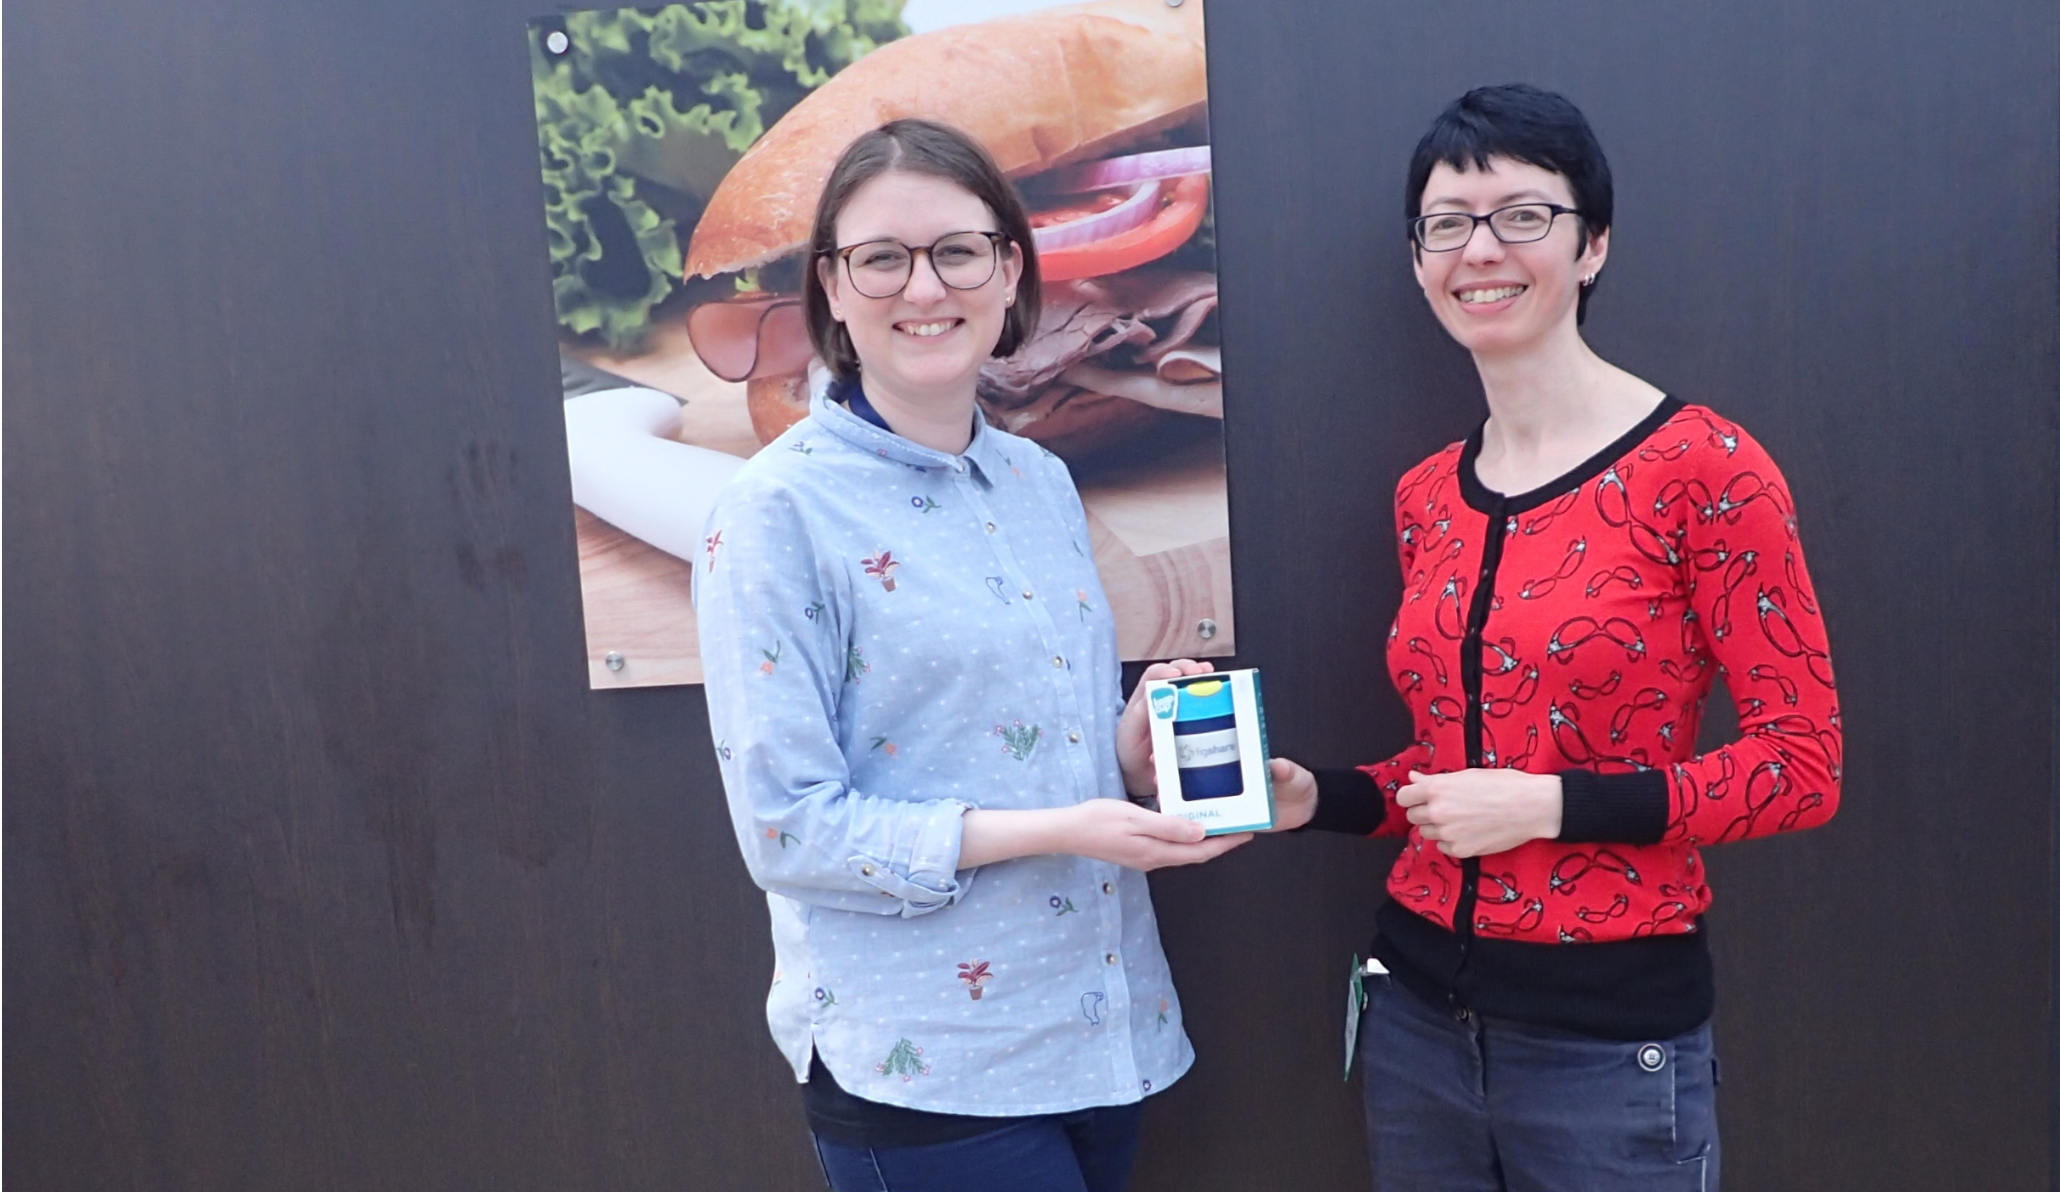 Photo of Georgina presenting Hannah with a figshare cup